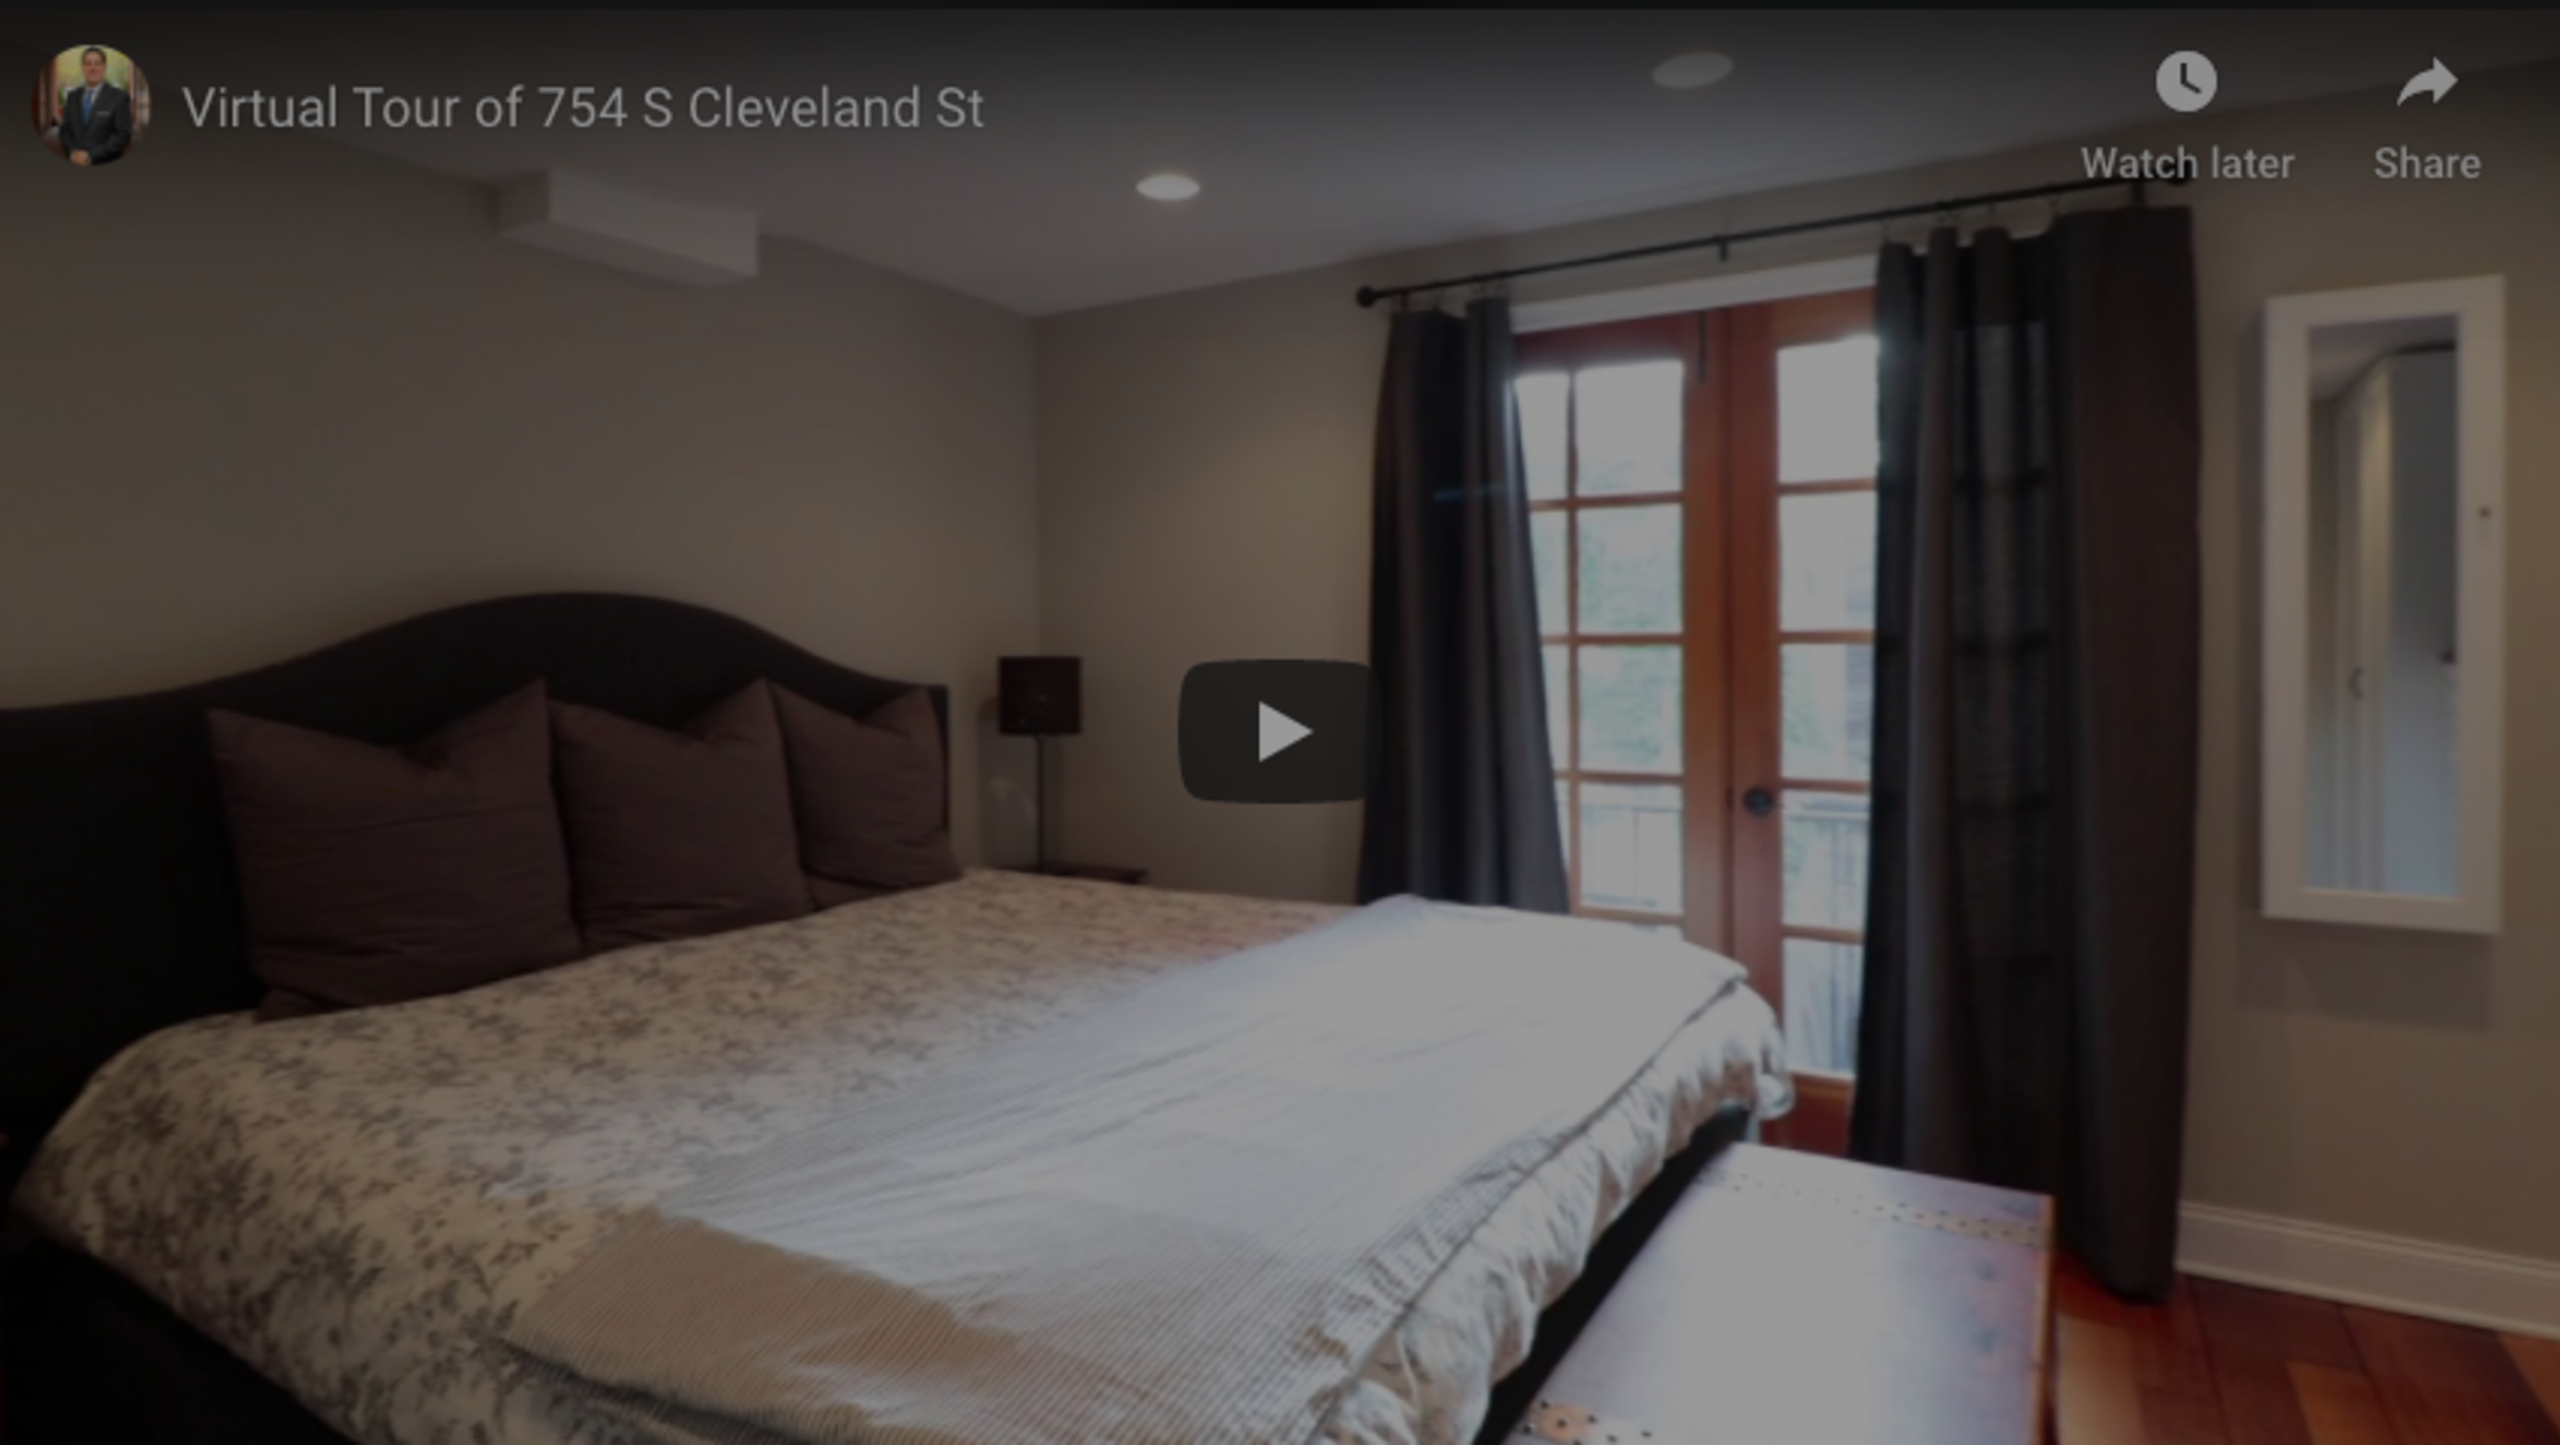 Virtual Tour of 954 S Cleveland Street